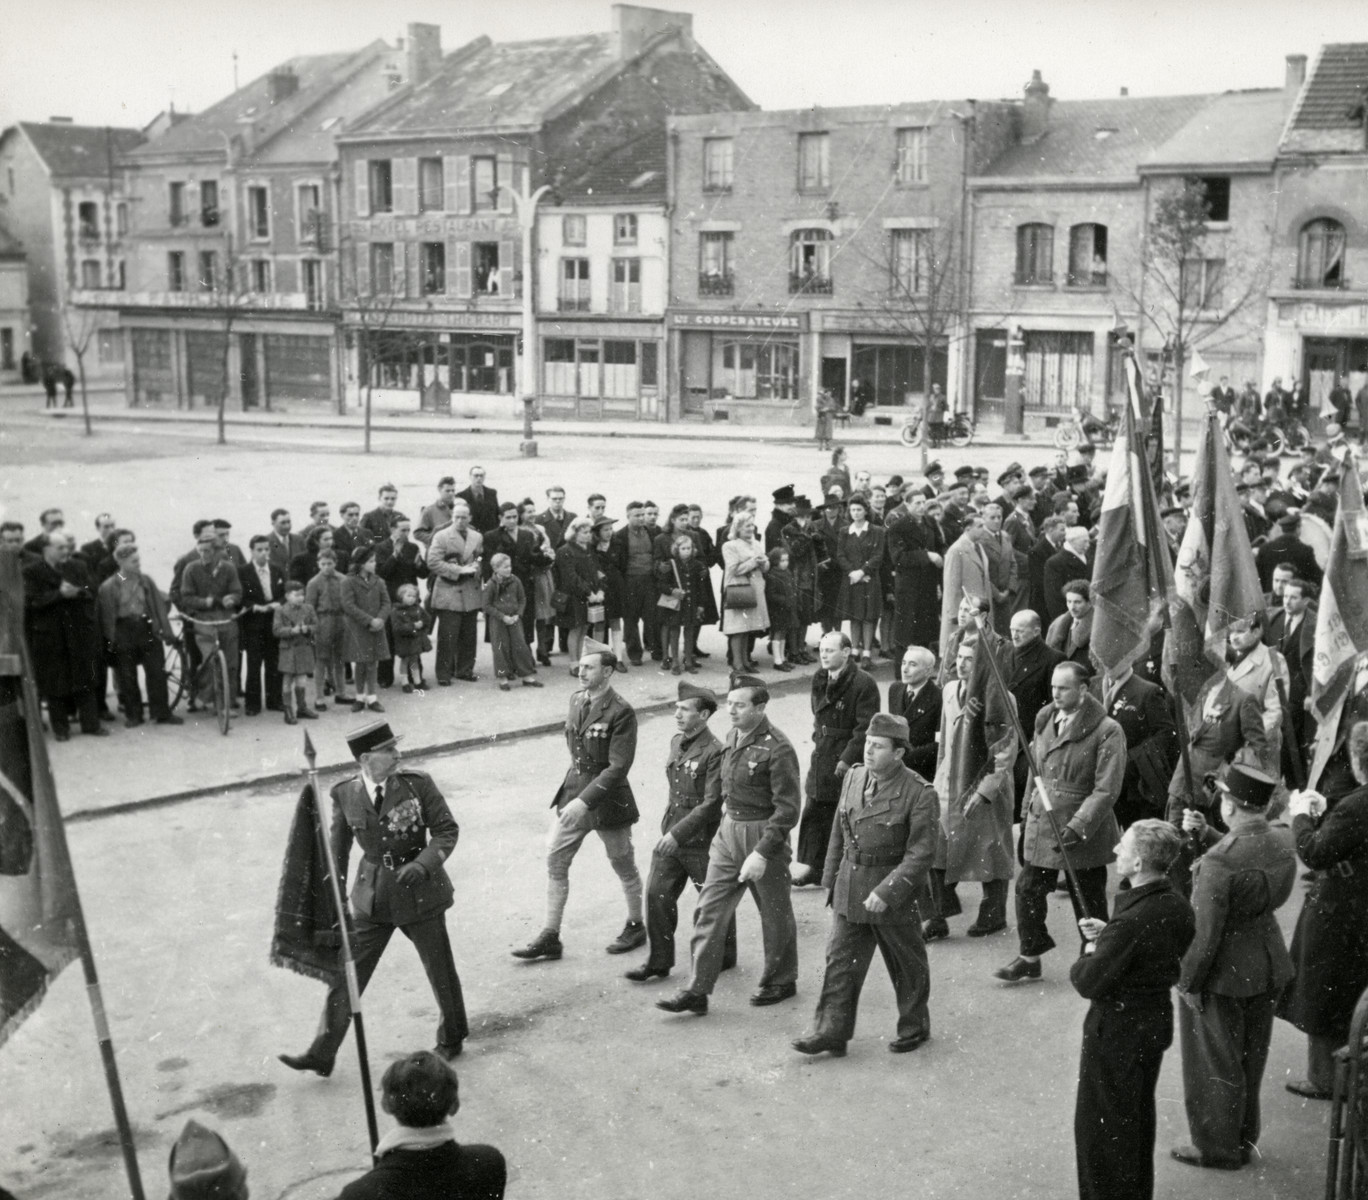 Members of the Free French Forces parade through the streets of a French town.  Victor David Tulman is pictured marching in the front row on the right.